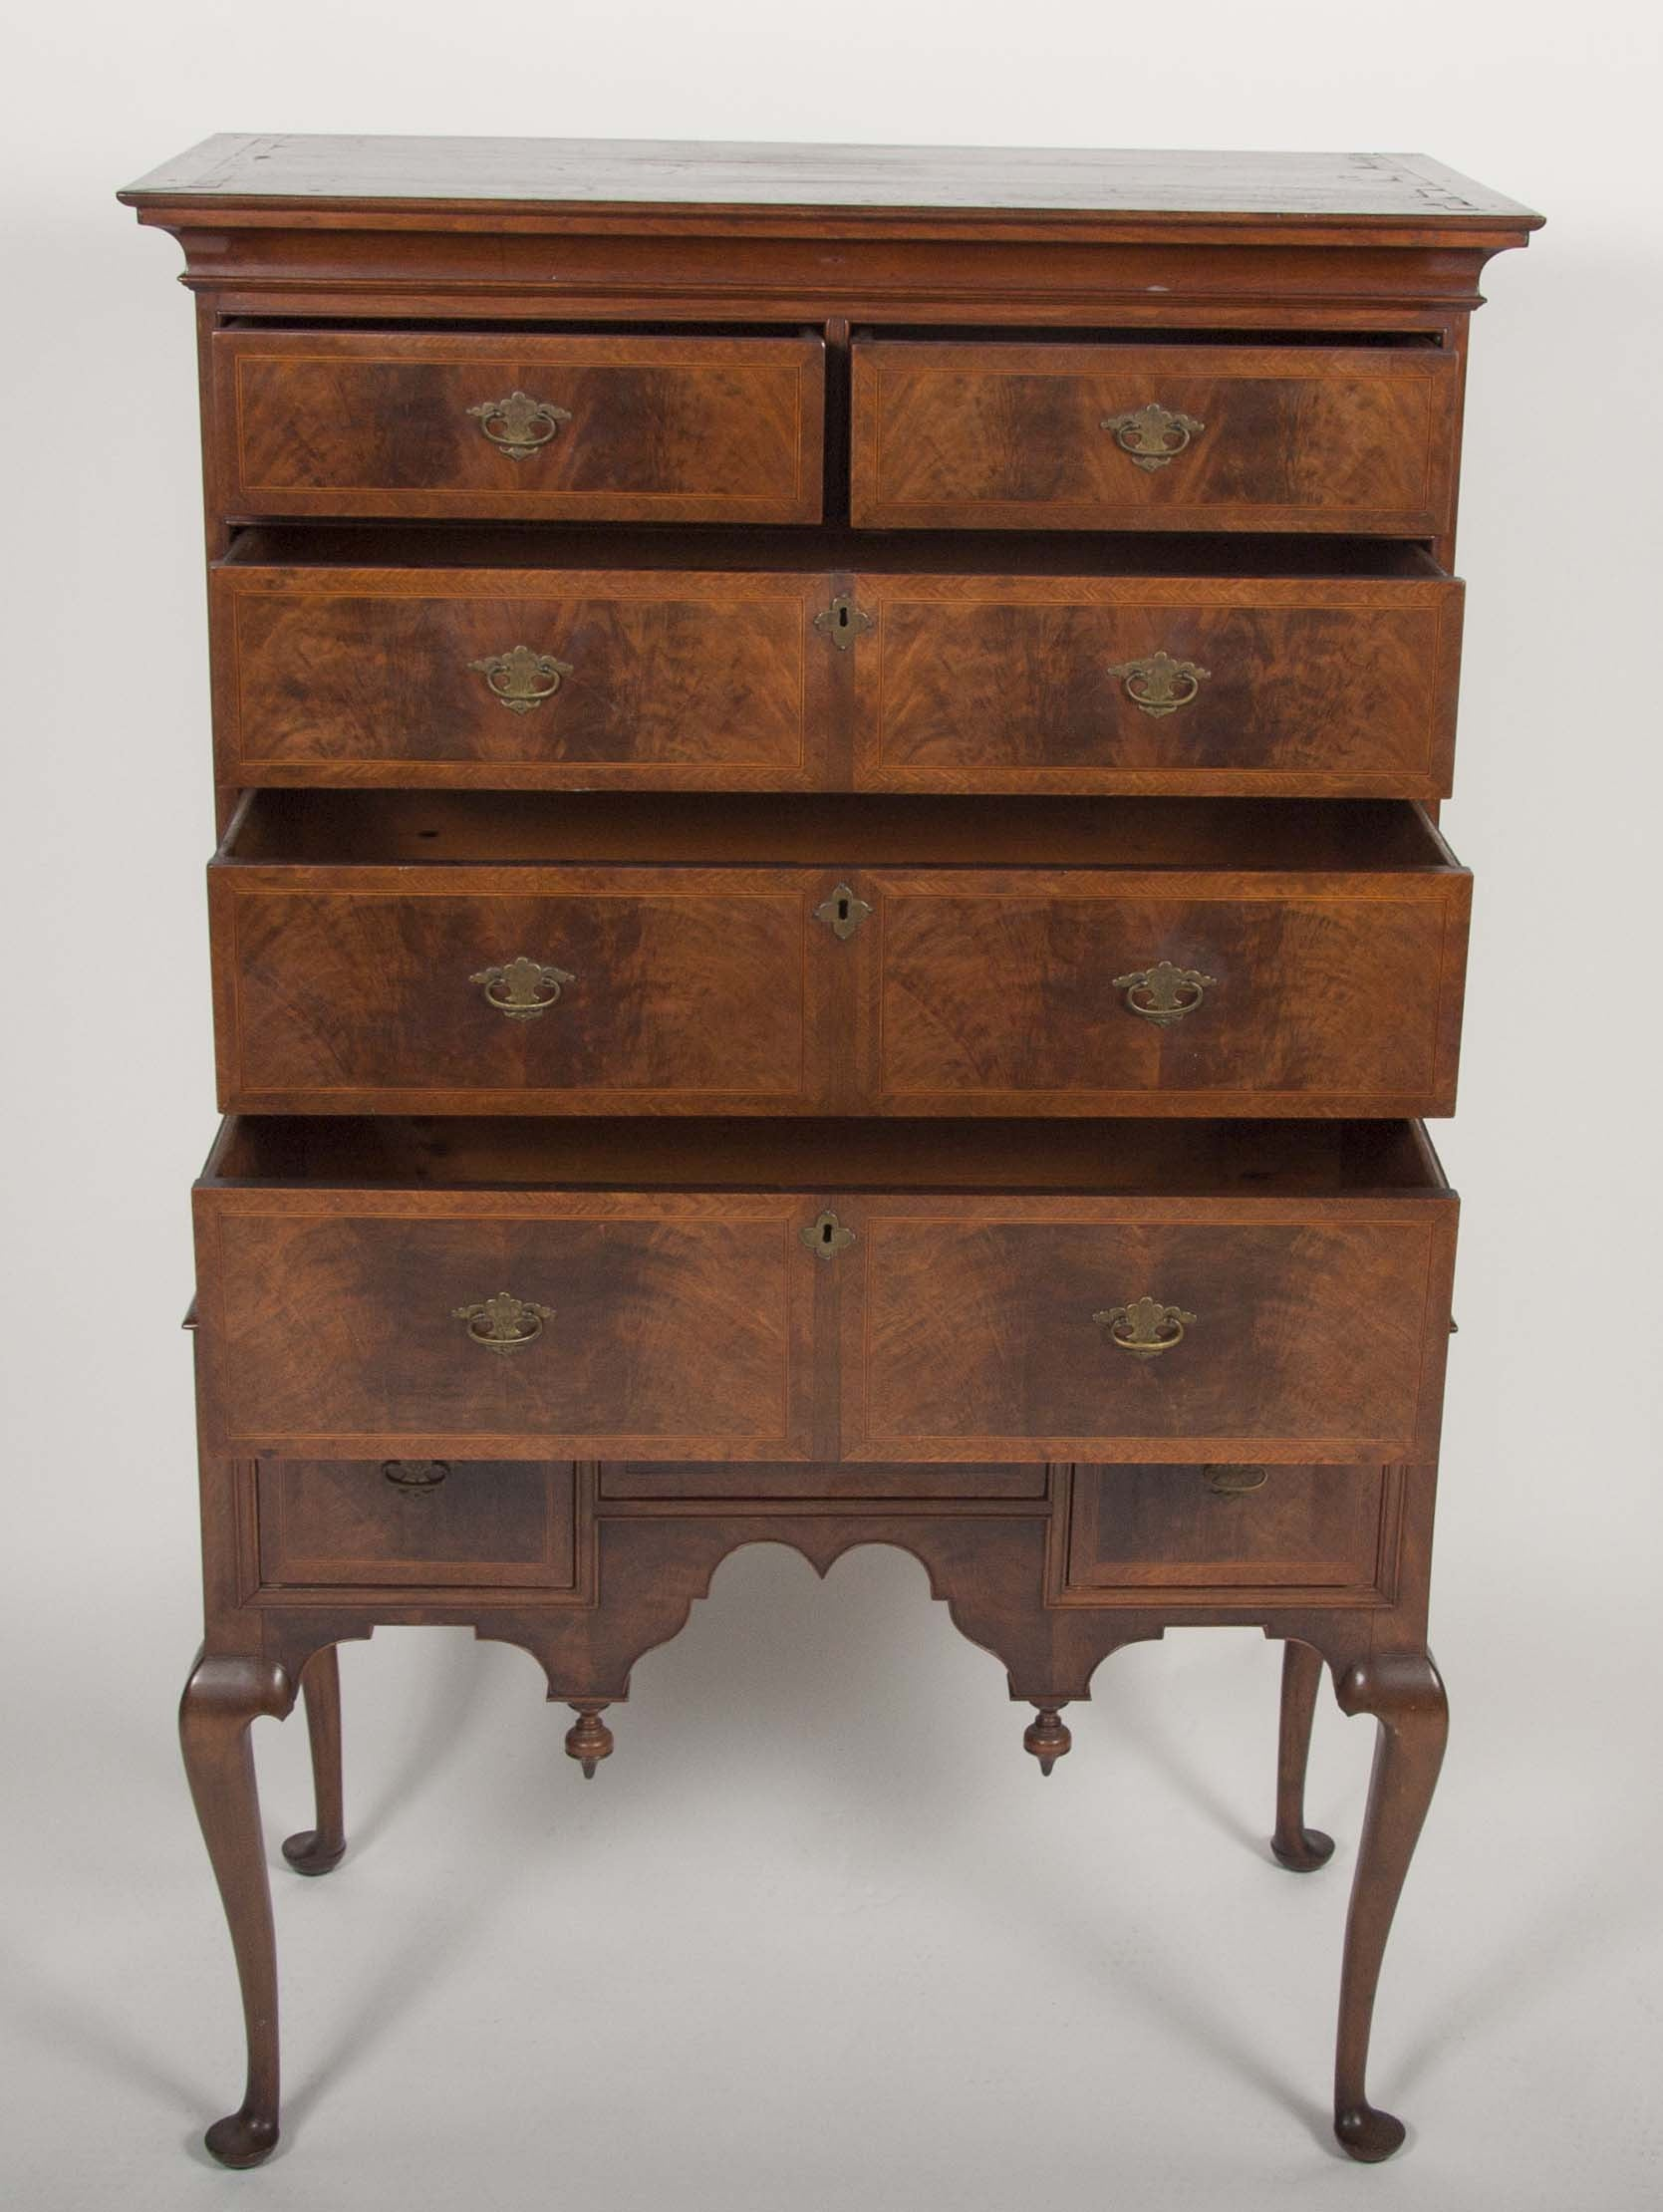 Desirable New England Diminutive Two Part Highboy